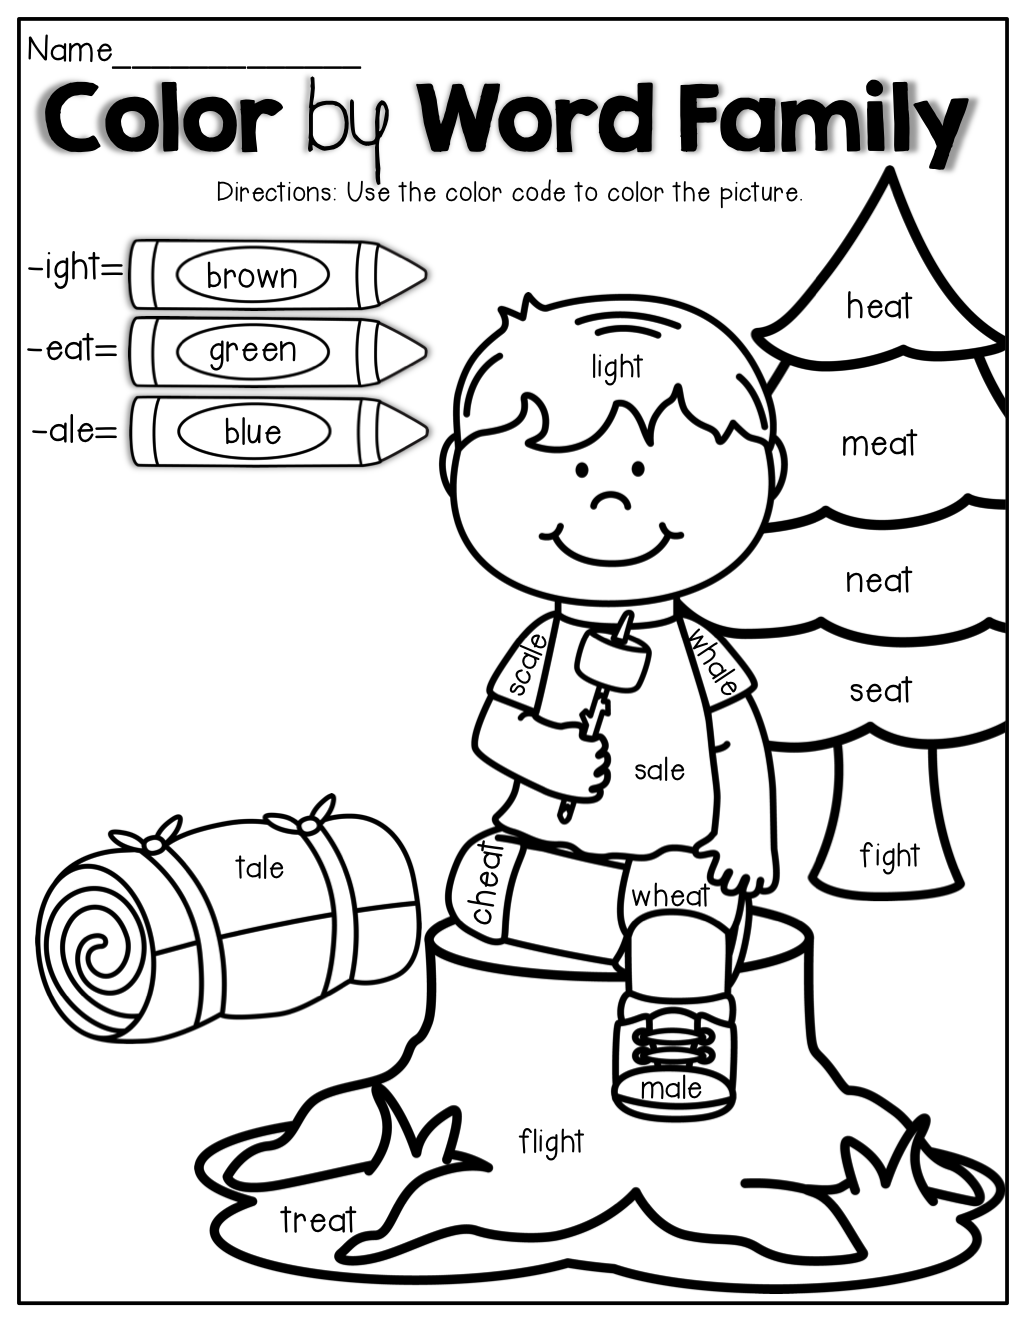 Worksheets Color By Sight Word Worksheets color by word family no prep summer edition edition